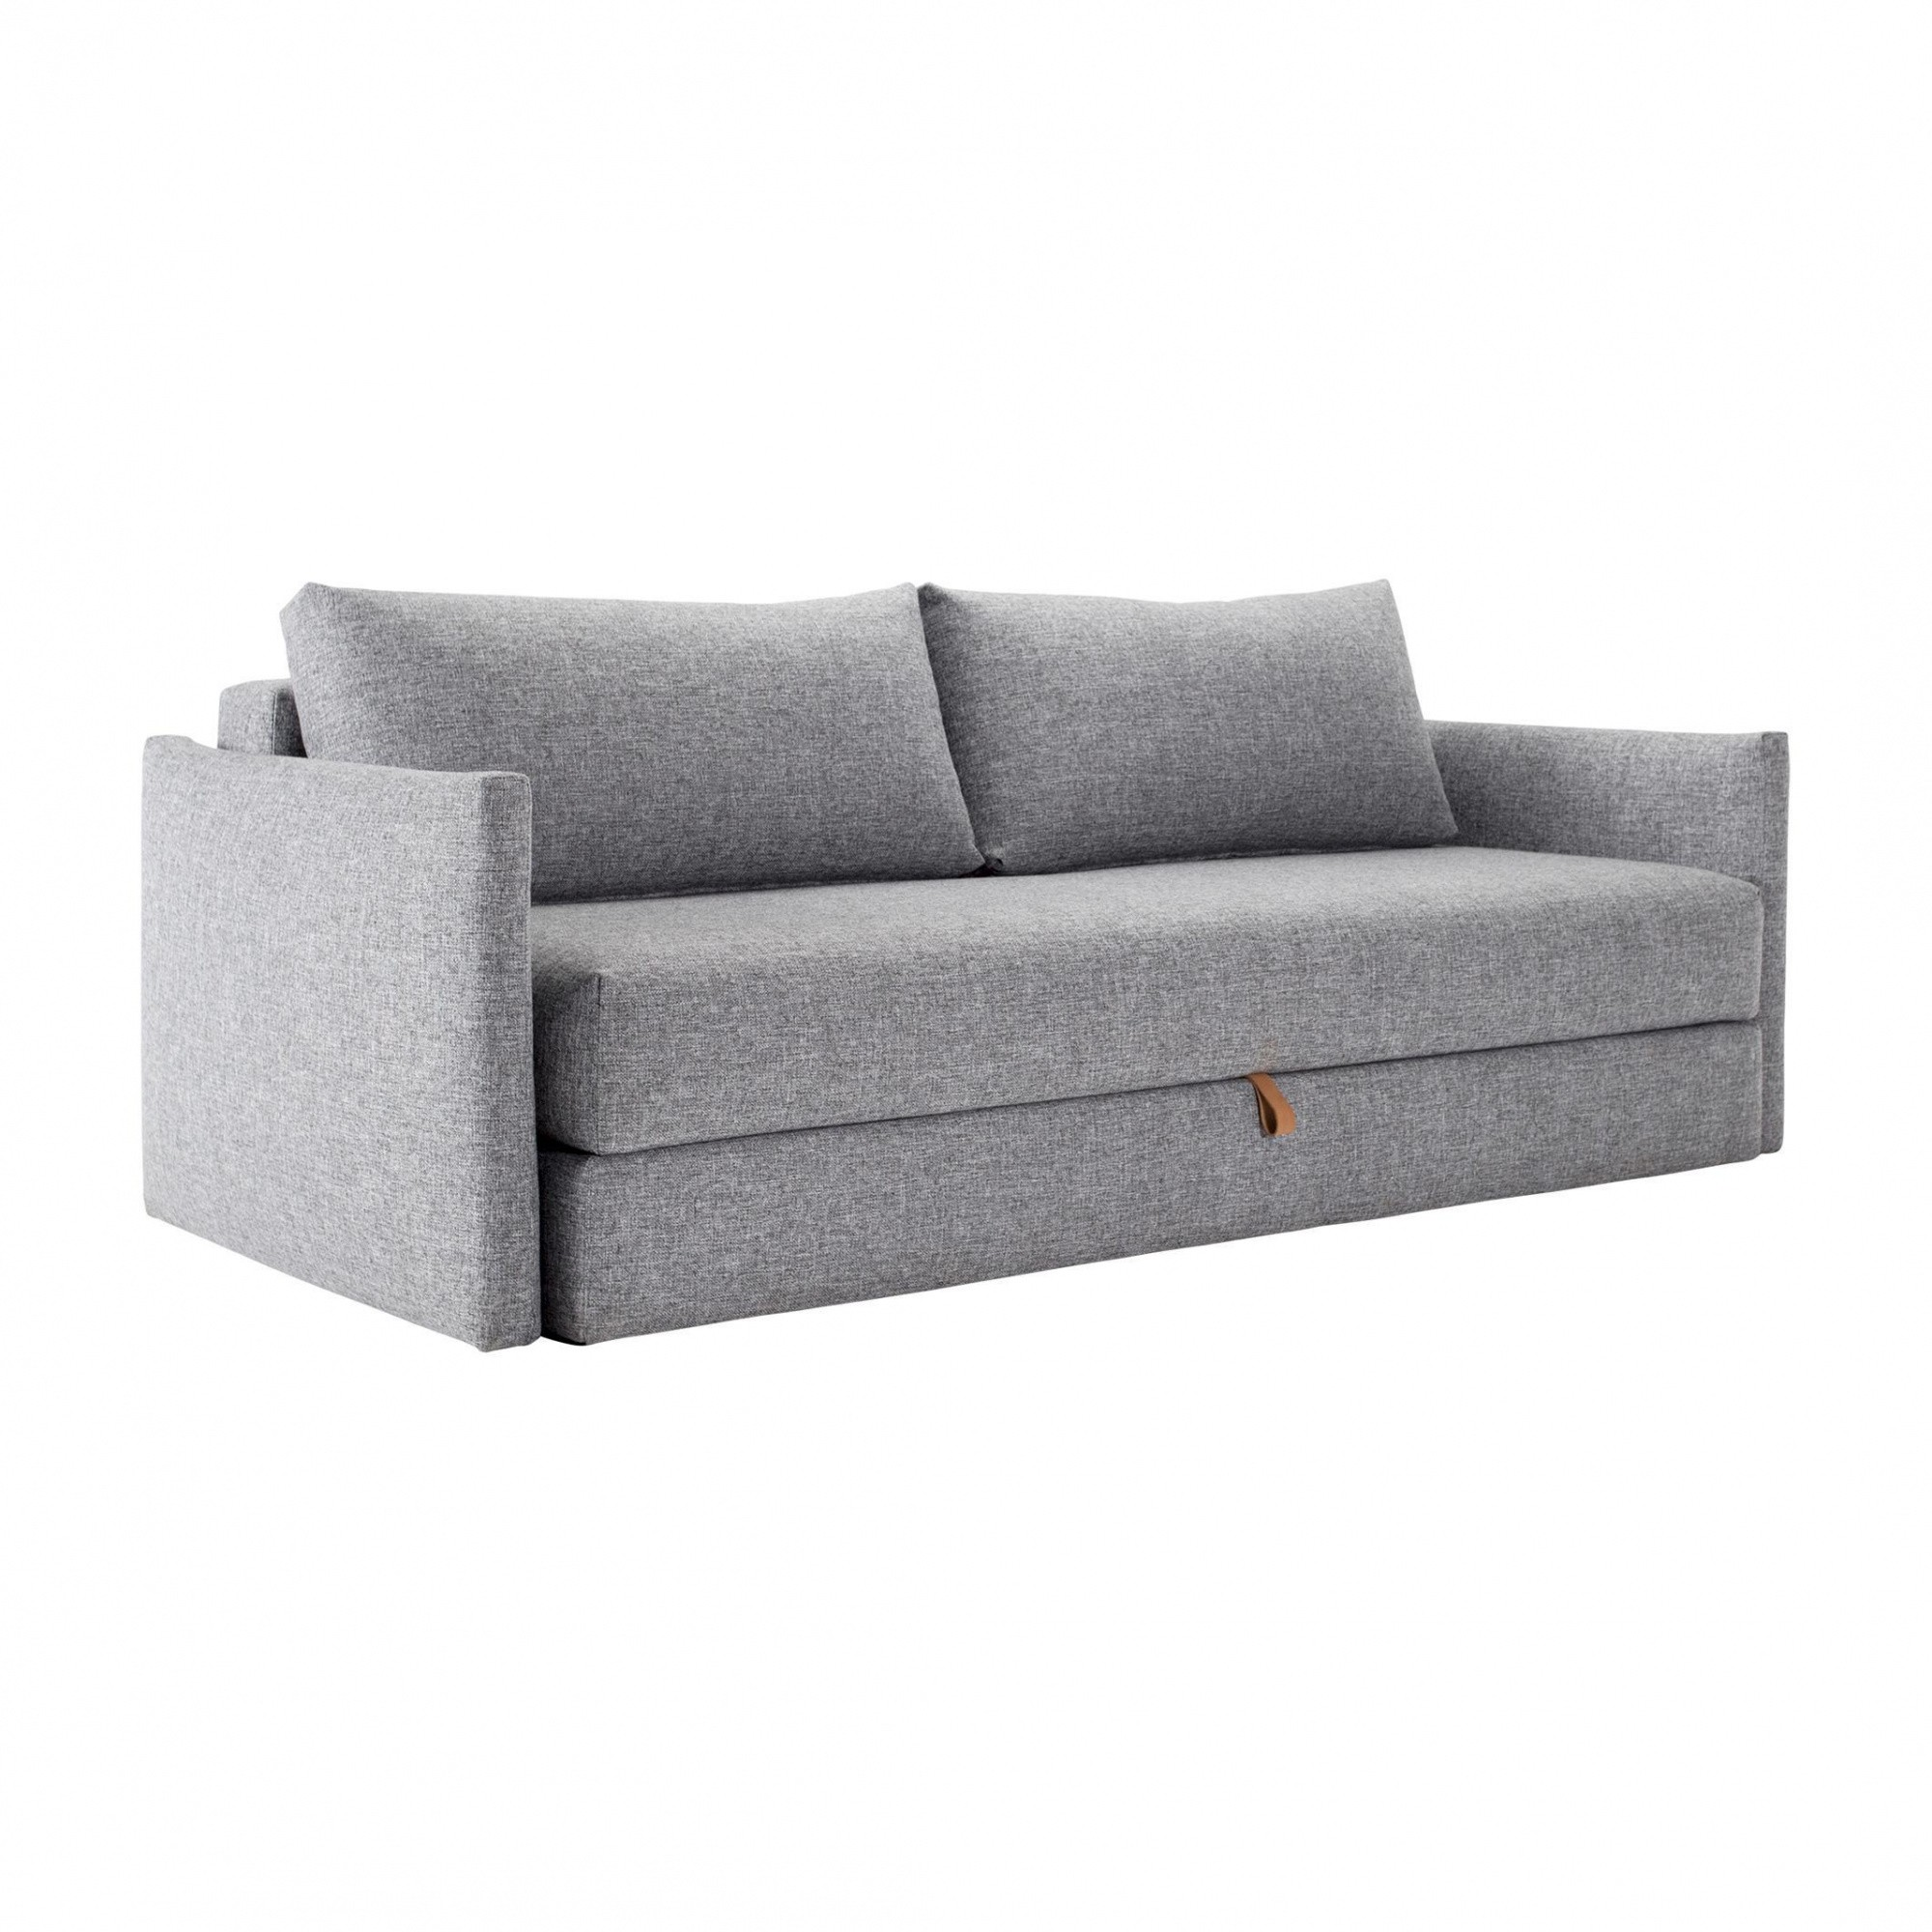 Innovation Tripi Sofa Bed With Armrests 227x108cm Ambientedirect